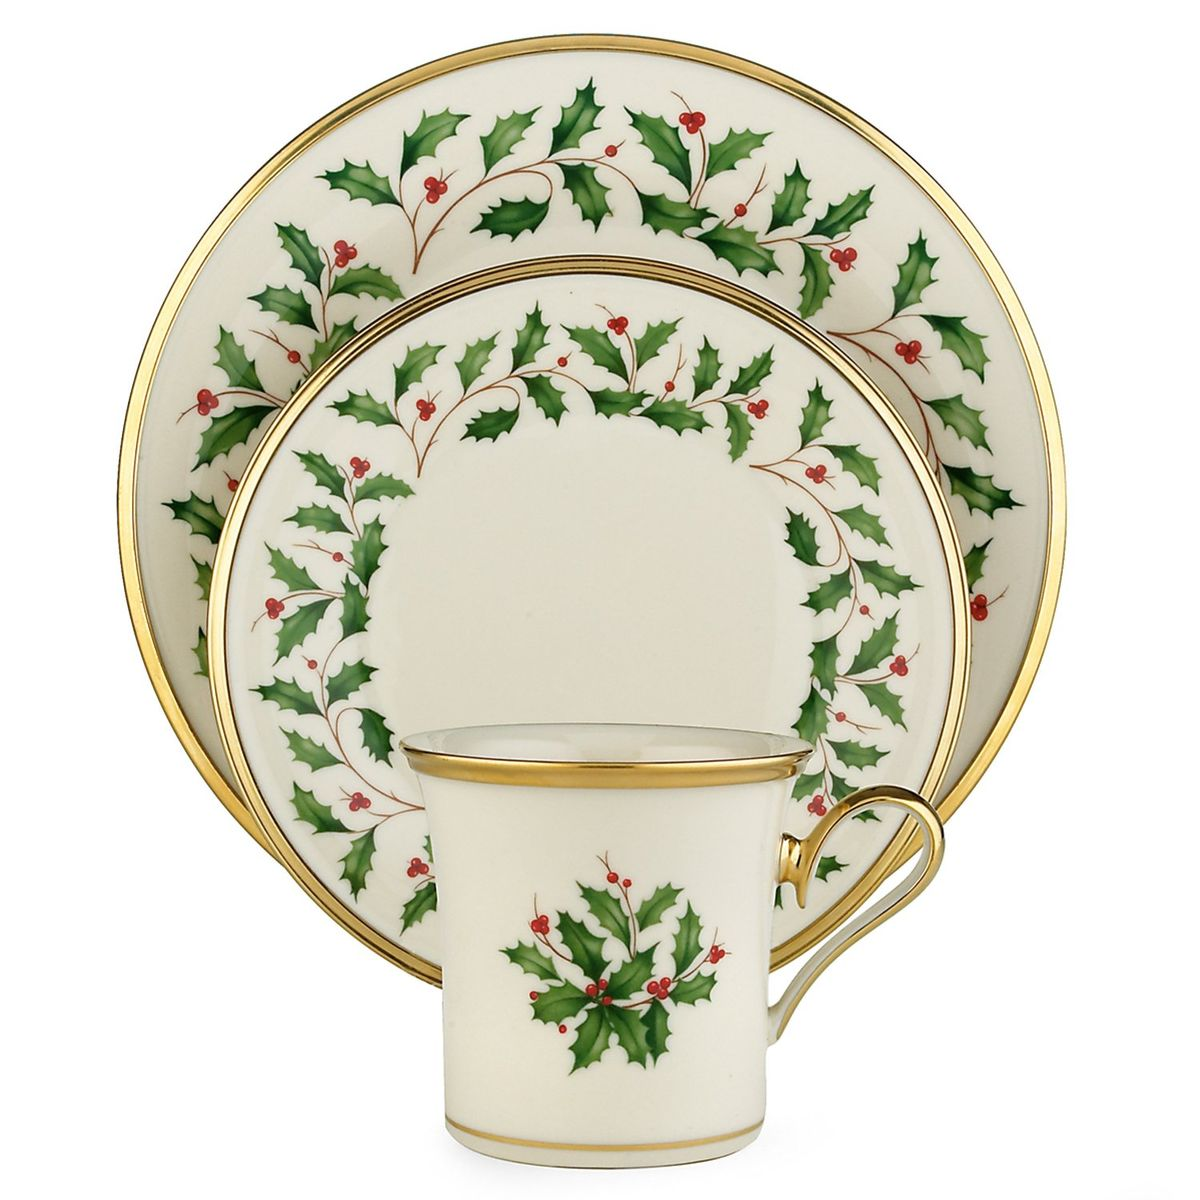 Headline for Best-Rated Christmas Holiday Dinnerware Sets On Sale - Reviews And Ratings